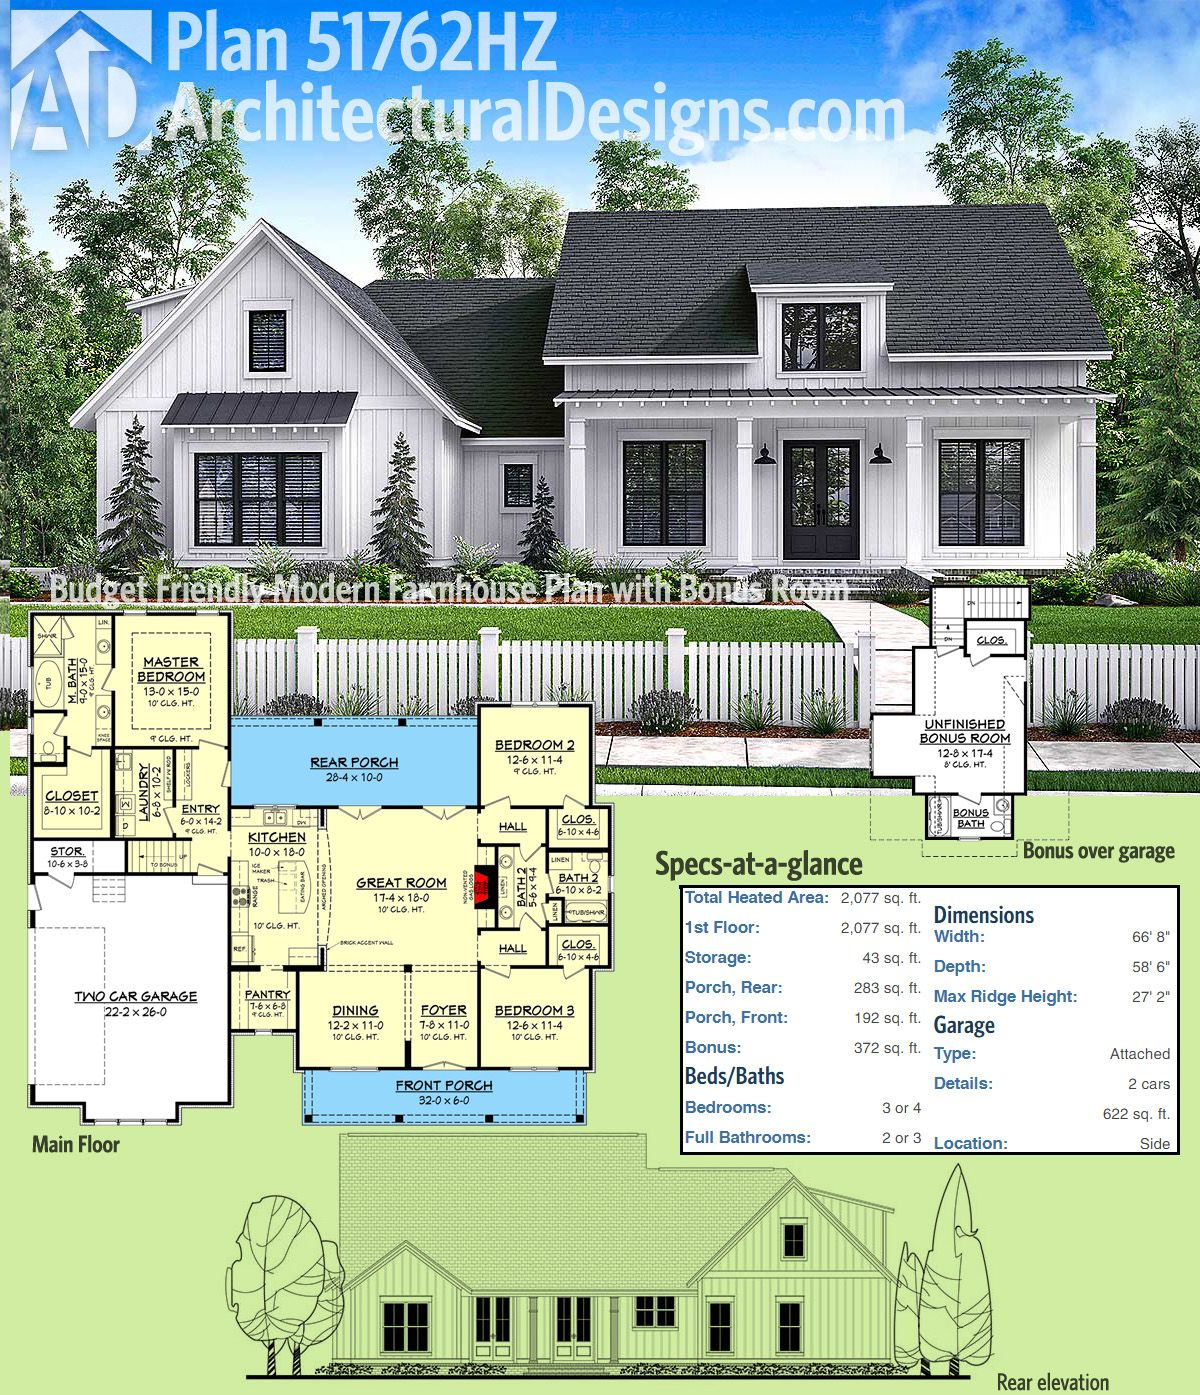 1000 Images About Home Foursquare Living On Pinterest: Plan 51762HZ: Budget Friendly Modern Farmhouse Plan With